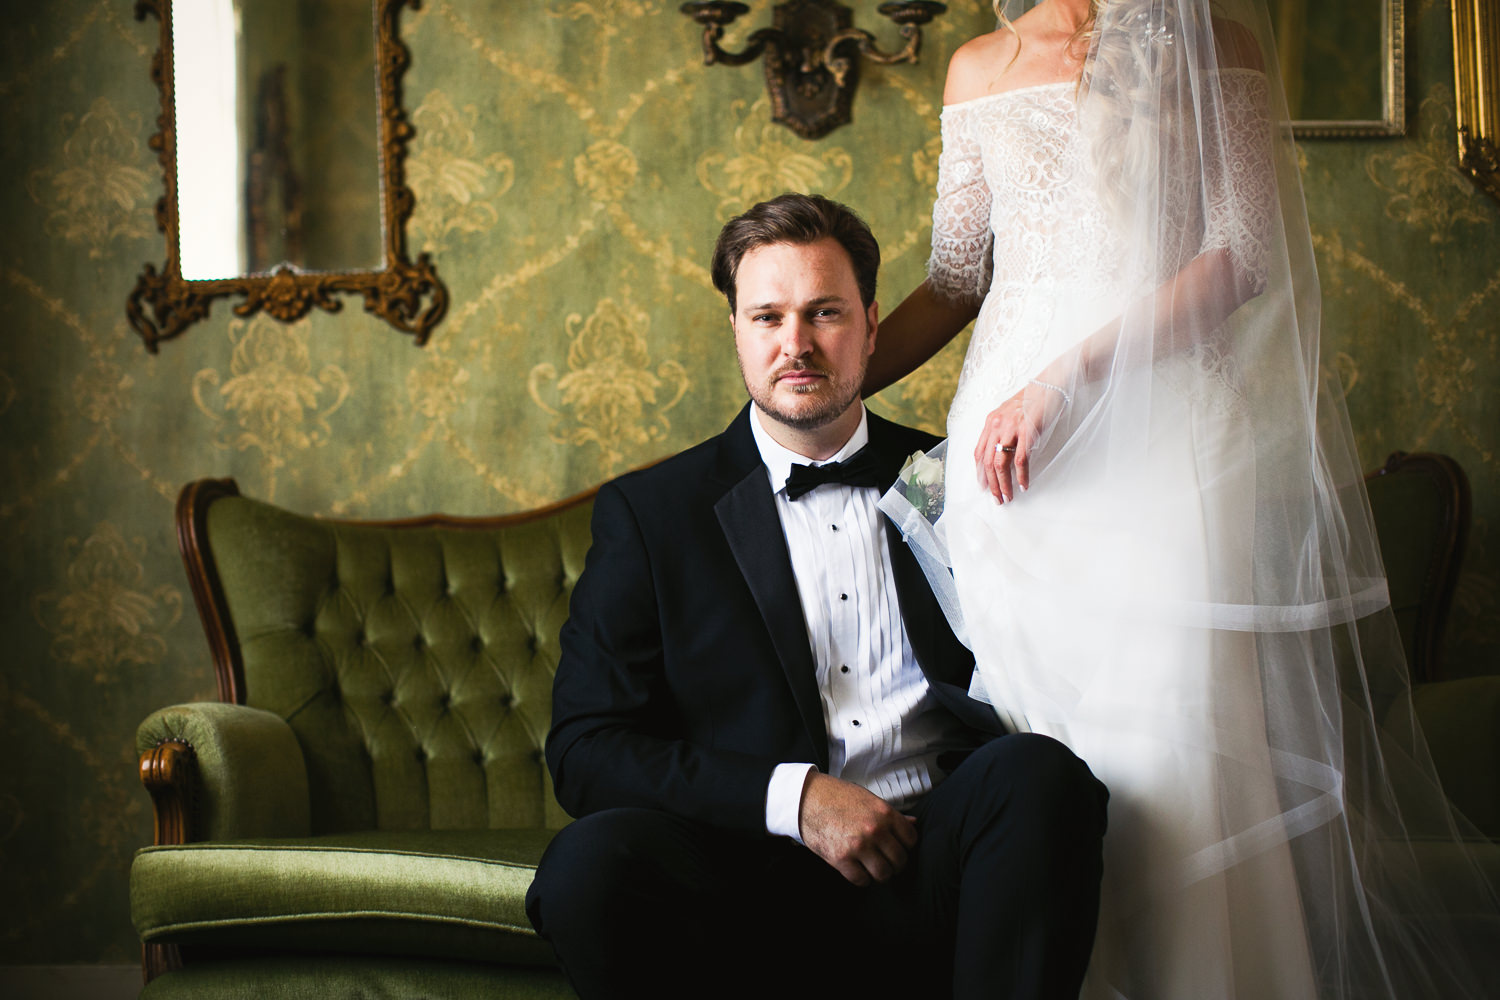 Ebell Long Beach Wedding - Stunning shot on the couch